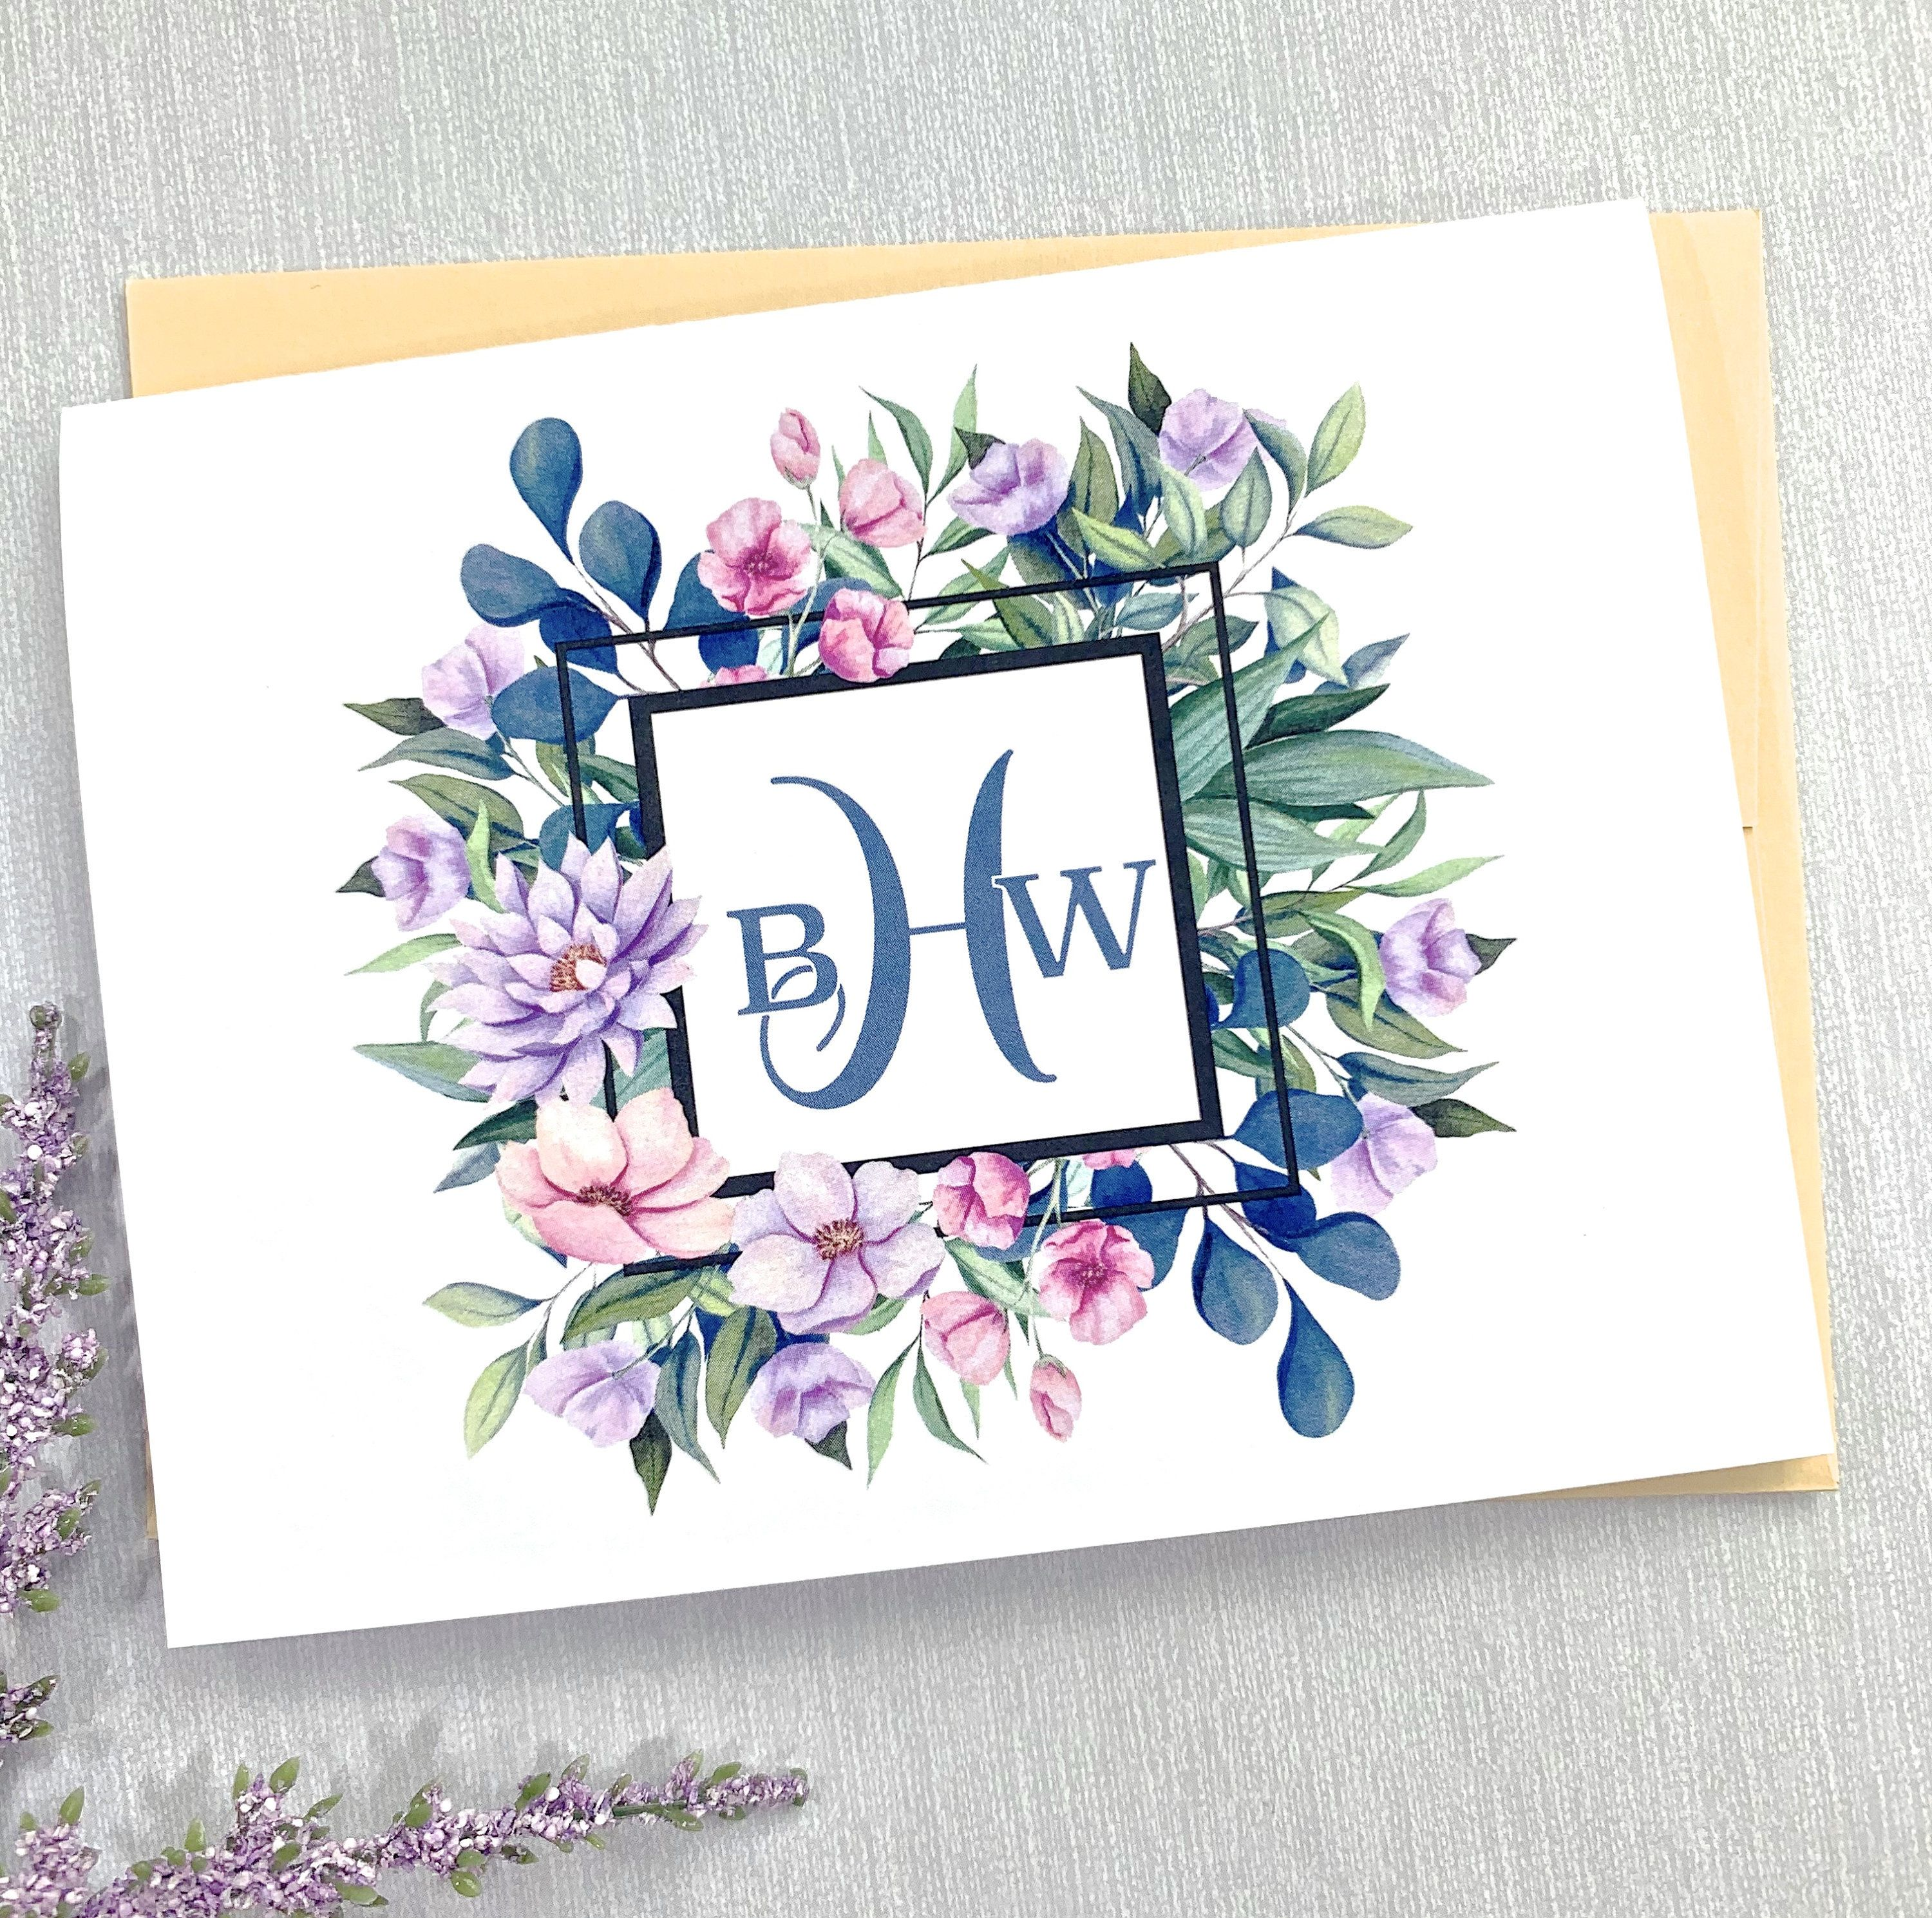 Monogrammed cards womens thank you notes women